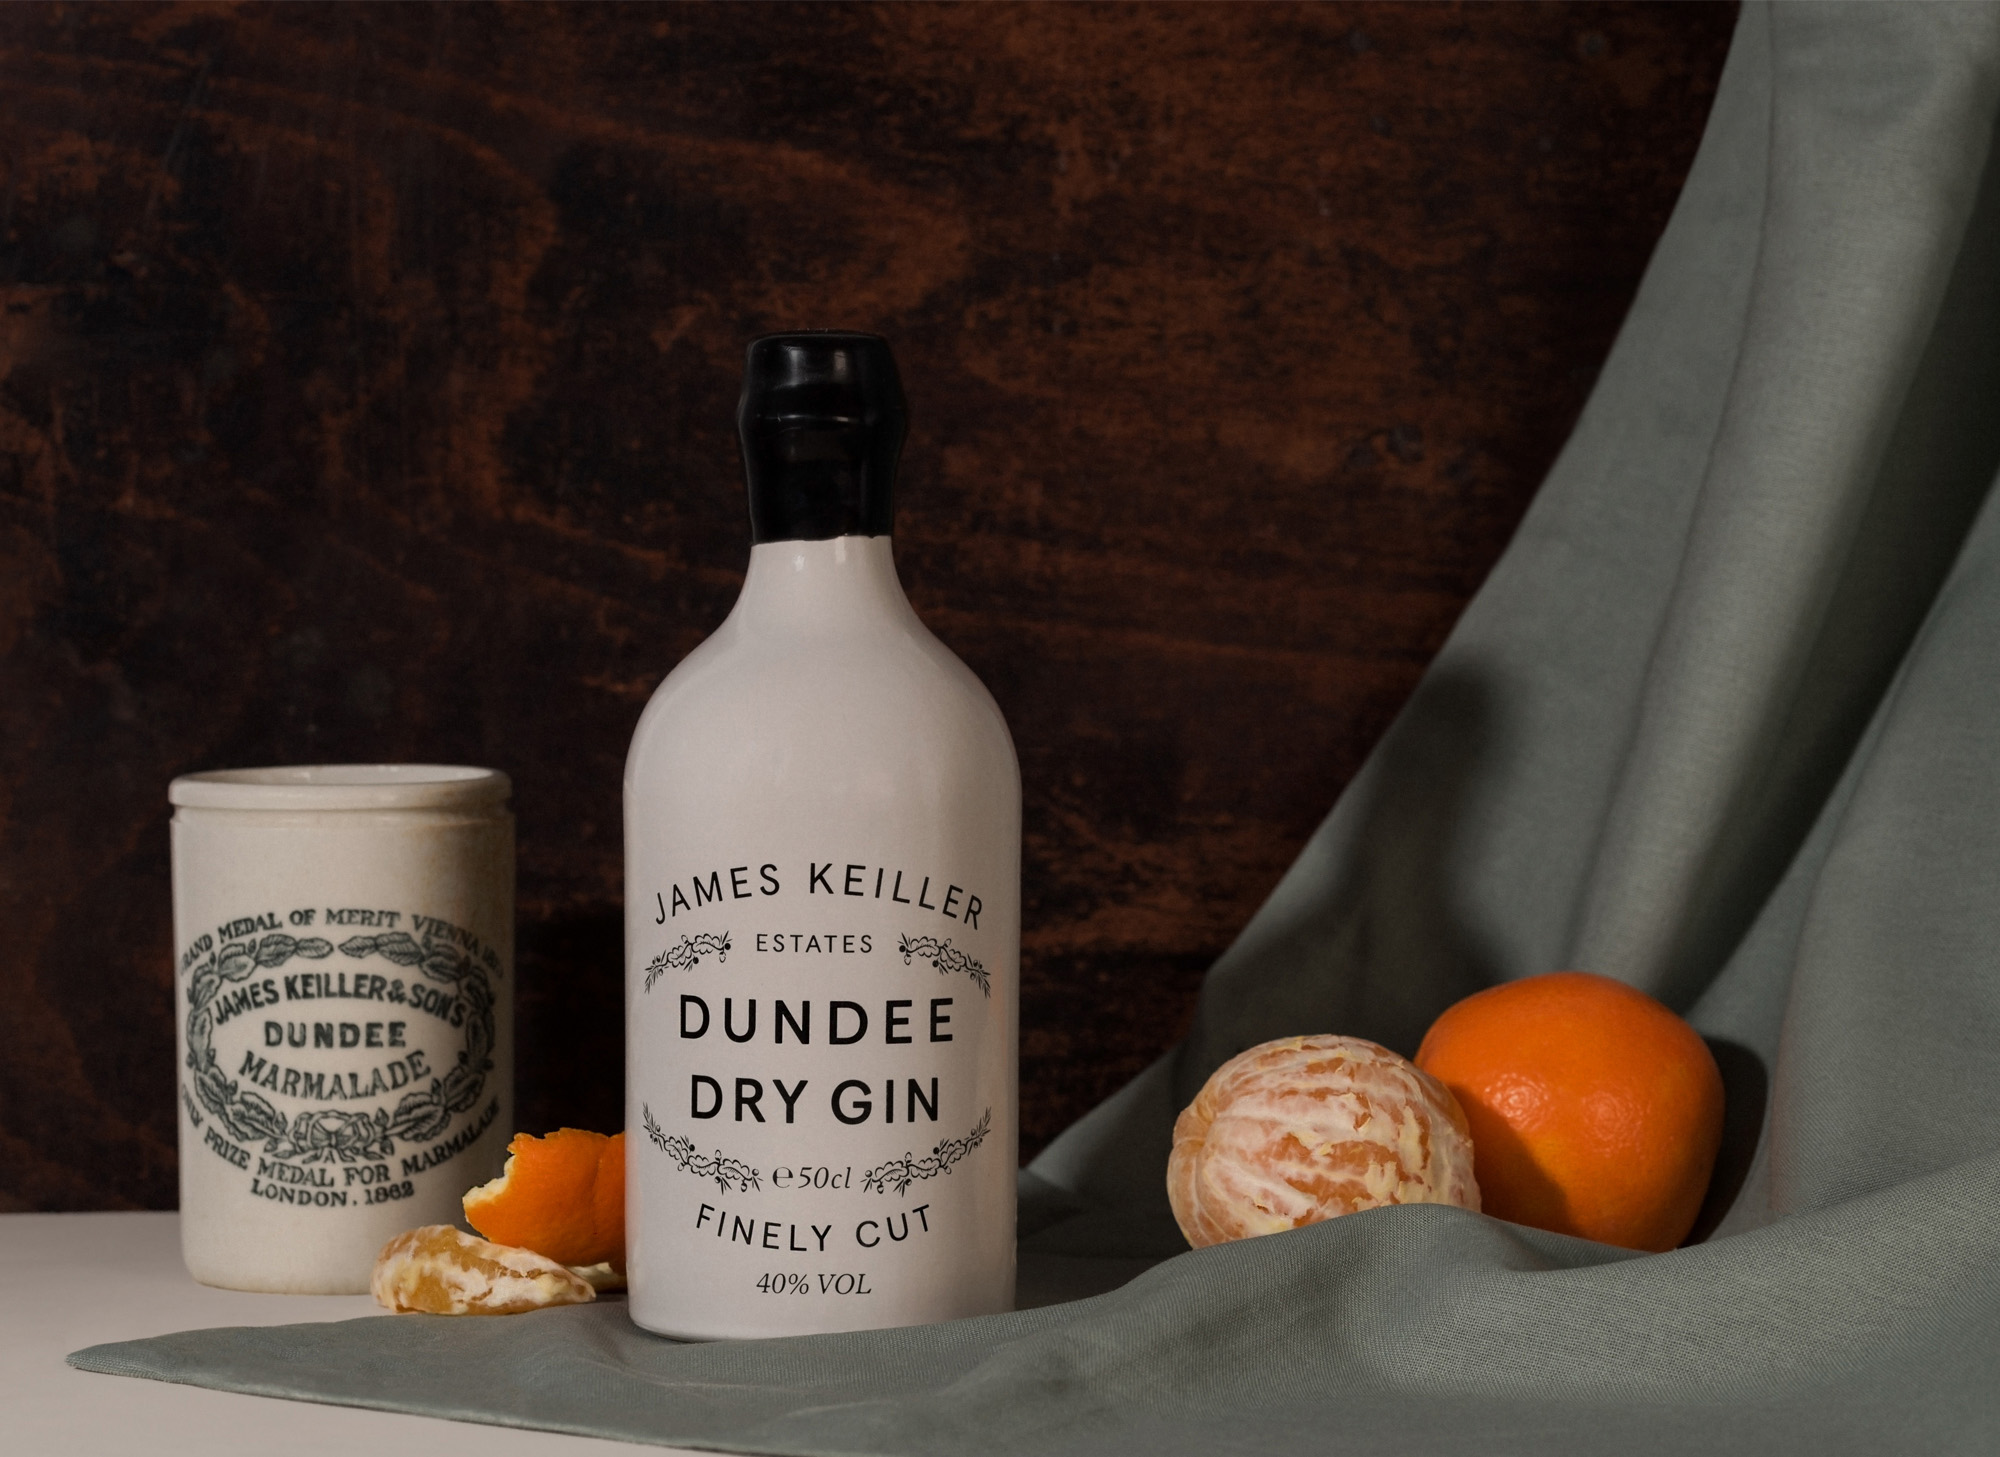 Keillers Dundee Dry Gin bottle with oranges and orange peel